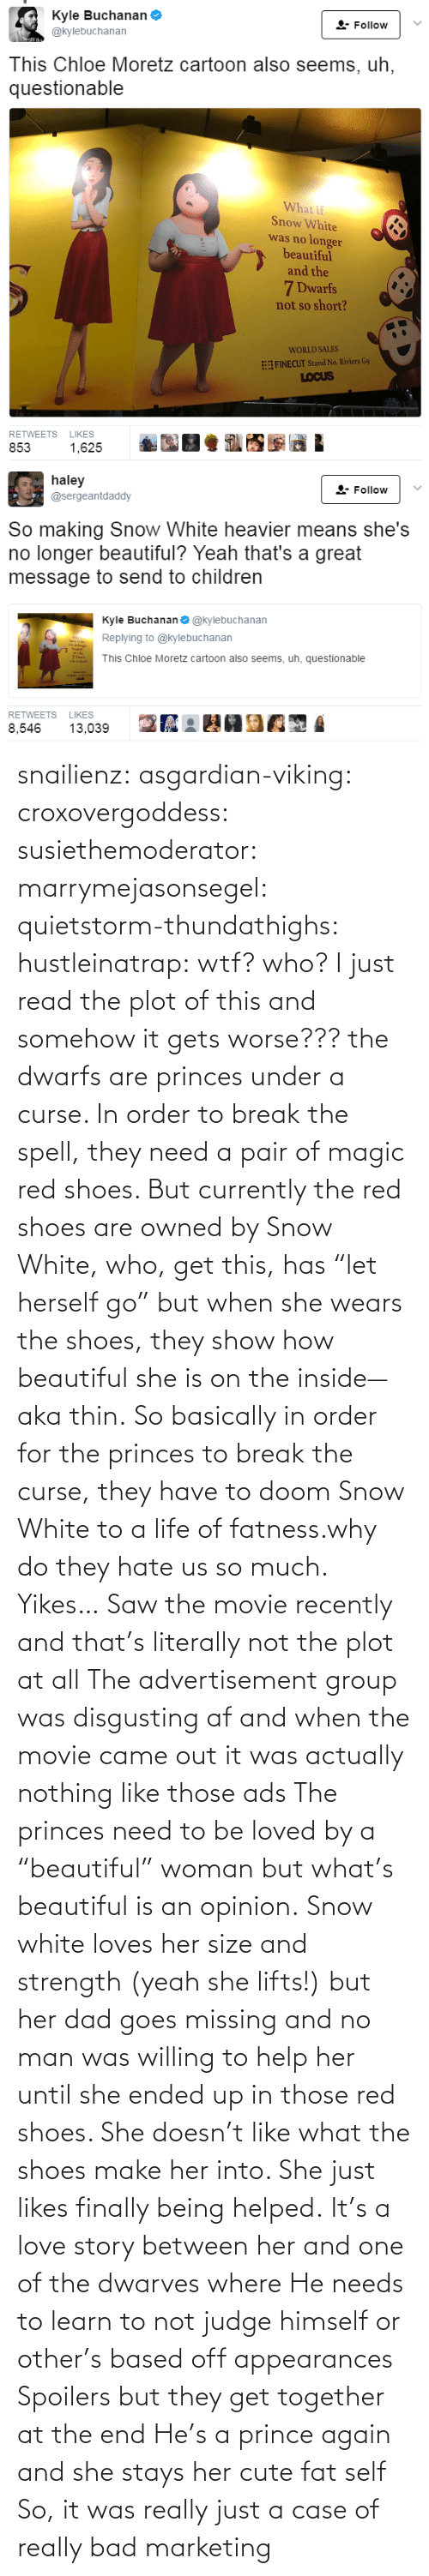 "group: snailienz: asgardian-viking:  croxovergoddess:  susiethemoderator:  marrymejasonsegel:   quietstorm-thundathighs:  hustleinatrap: wtf?  who?   I just read the plot of this and somehow it gets worse??? the dwarfs are princes under a curse. In order to break the spell, they need a pair of magic red shoes. But currently the red shoes are owned by Snow White, who, get this, has ""let herself go"" but when she wears the shoes, they show how beautiful she is on the inside—aka thin. So basically in order for the princes to break the curse, they have to doom Snow White to a life of fatness.why do they hate us so much.   Yikes…    Saw the movie recently and that's literally not the plot at all The advertisement group was disgusting af and when the movie came out it was actually nothing like those ads The princes need to be loved by a ""beautiful"" woman but what's beautiful is an opinion. Snow white loves her size and strength (yeah she lifts!) but her dad goes missing and no man was willing to help her until she ended up in those red shoes. She doesn't like what the shoes make her into. She just likes finally being helped. It's a love story between her and one of the dwarves where He needs to learn to not judge himself or other's based off appearances  Spoilers but they get together at the end He's a prince again and she stays her cute fat self  So, it was really just a case of really bad marketing"